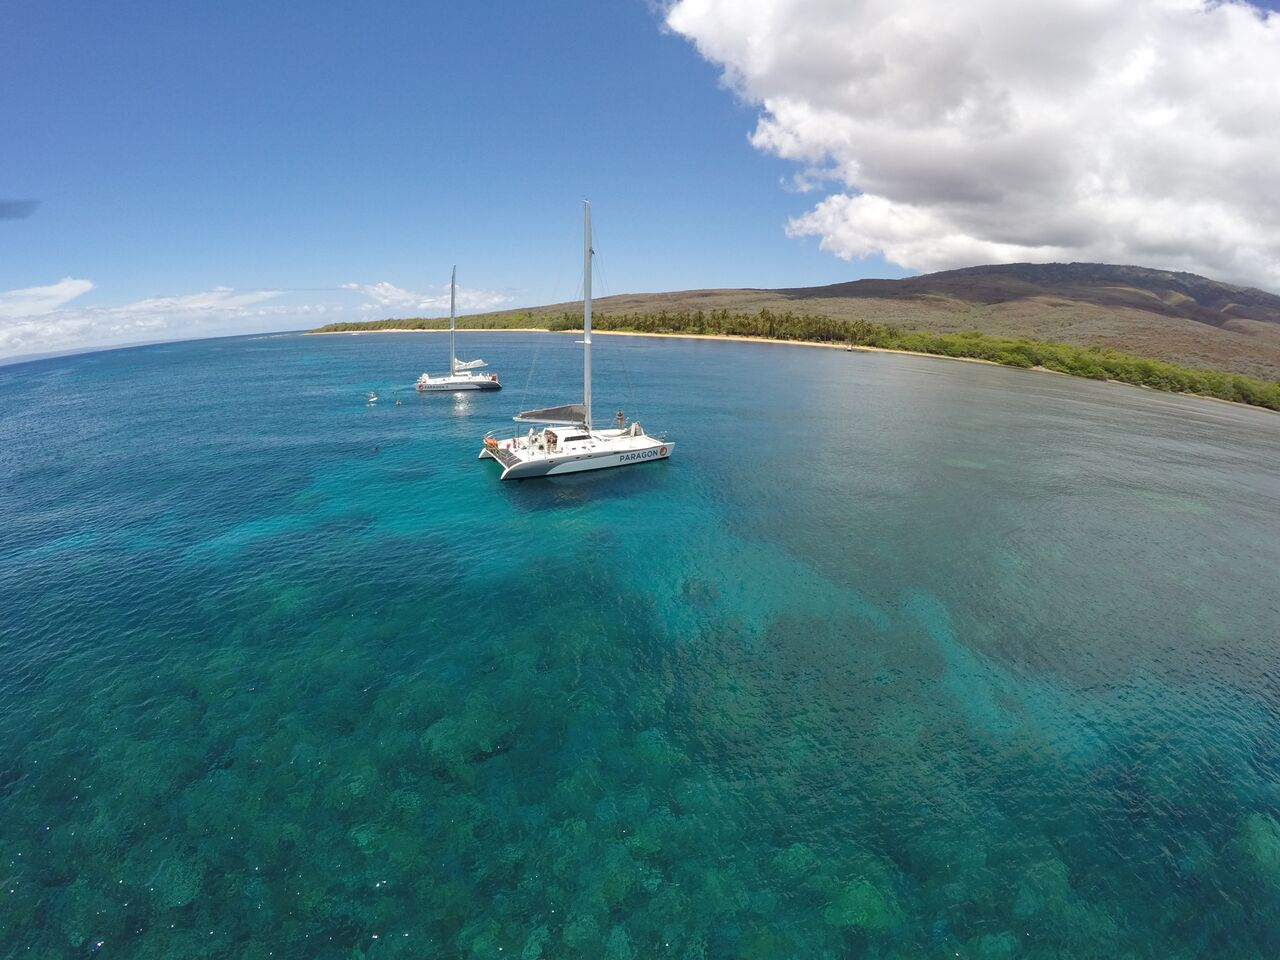 sail maui catamarans maui performance sailing